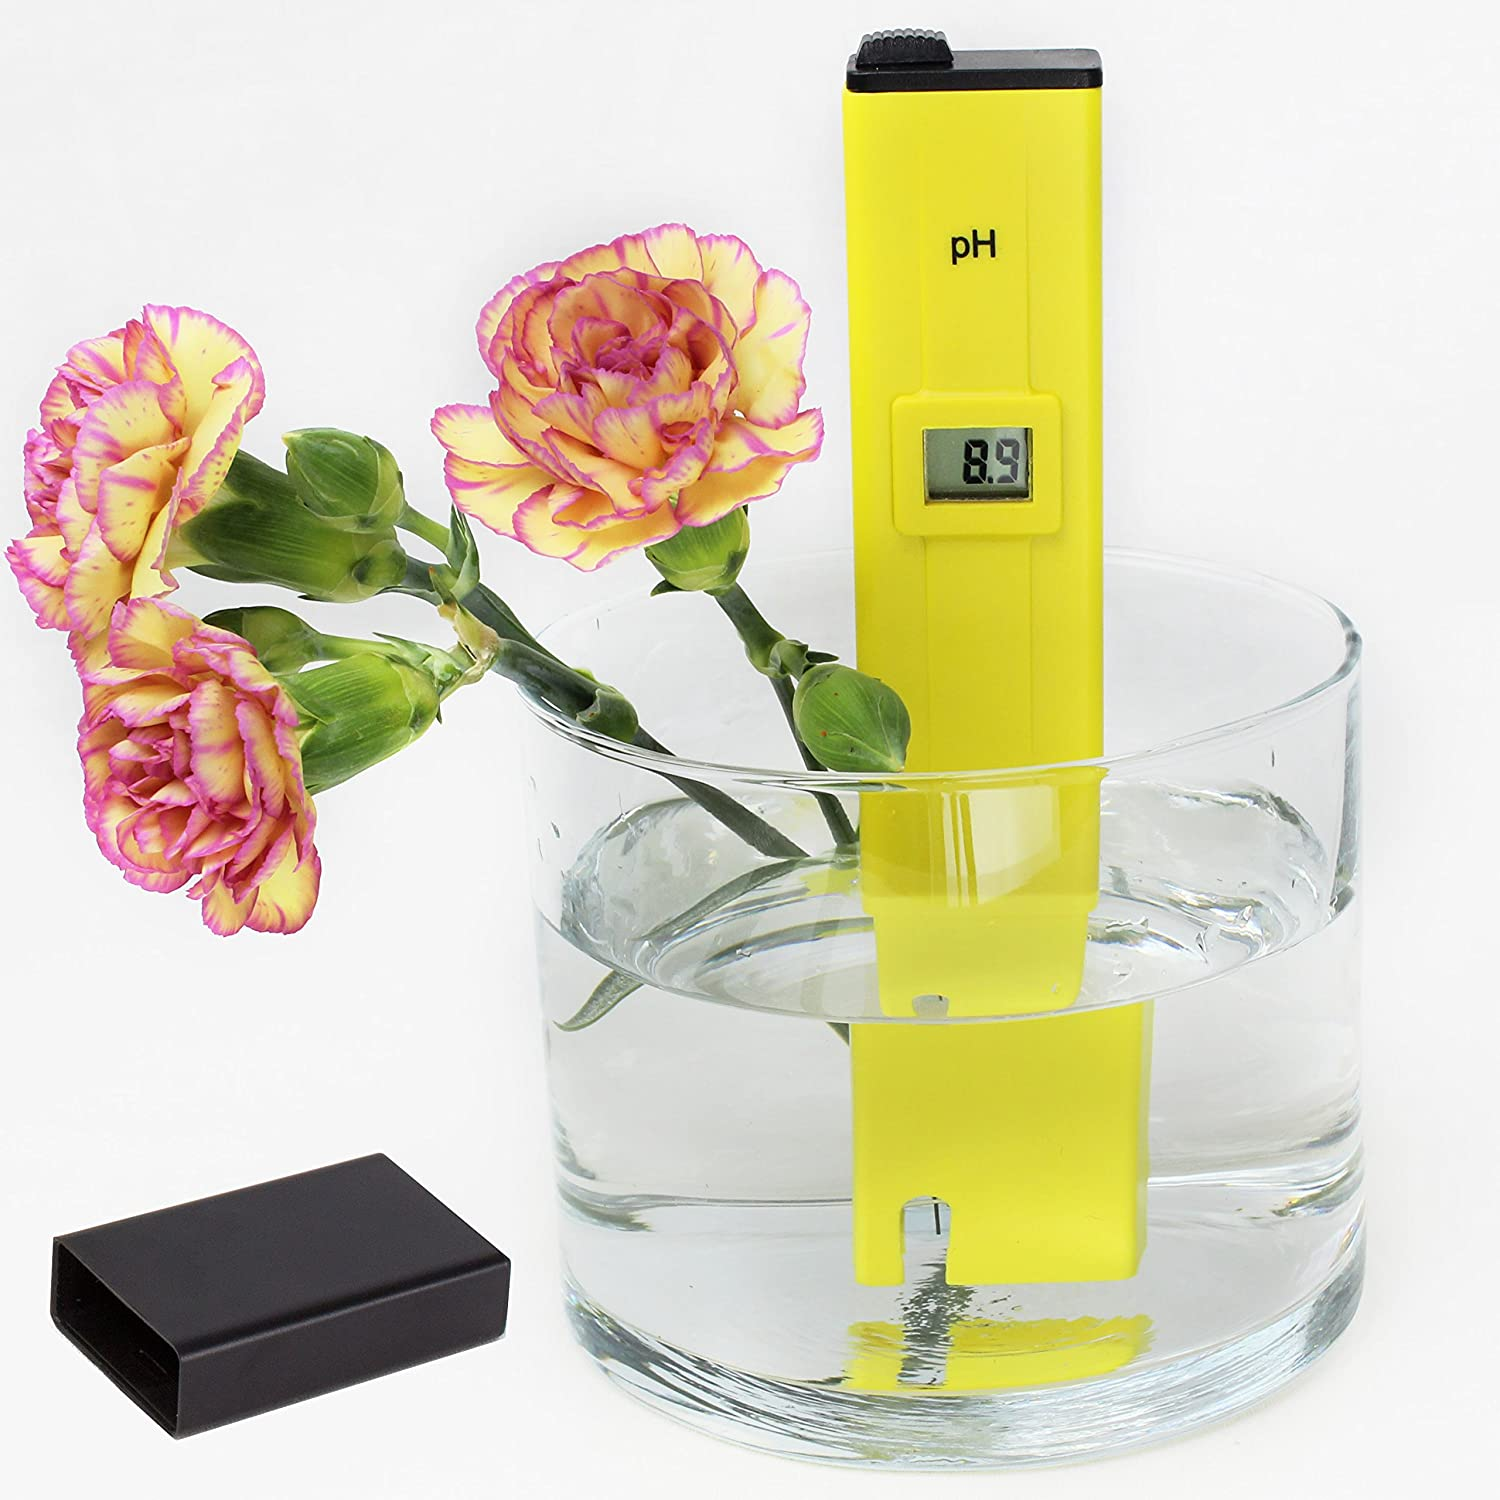 Digital PH Meter Tester Pen by Kiartten: This Waterproof pH Meter Does Far More Than Just Test Water! This Auto Pen Tester May Be Used For Water, Hydroponics, Pools, Spas and Other Water Based Applications. It's Also Perfect for Wines, Urine Testing &